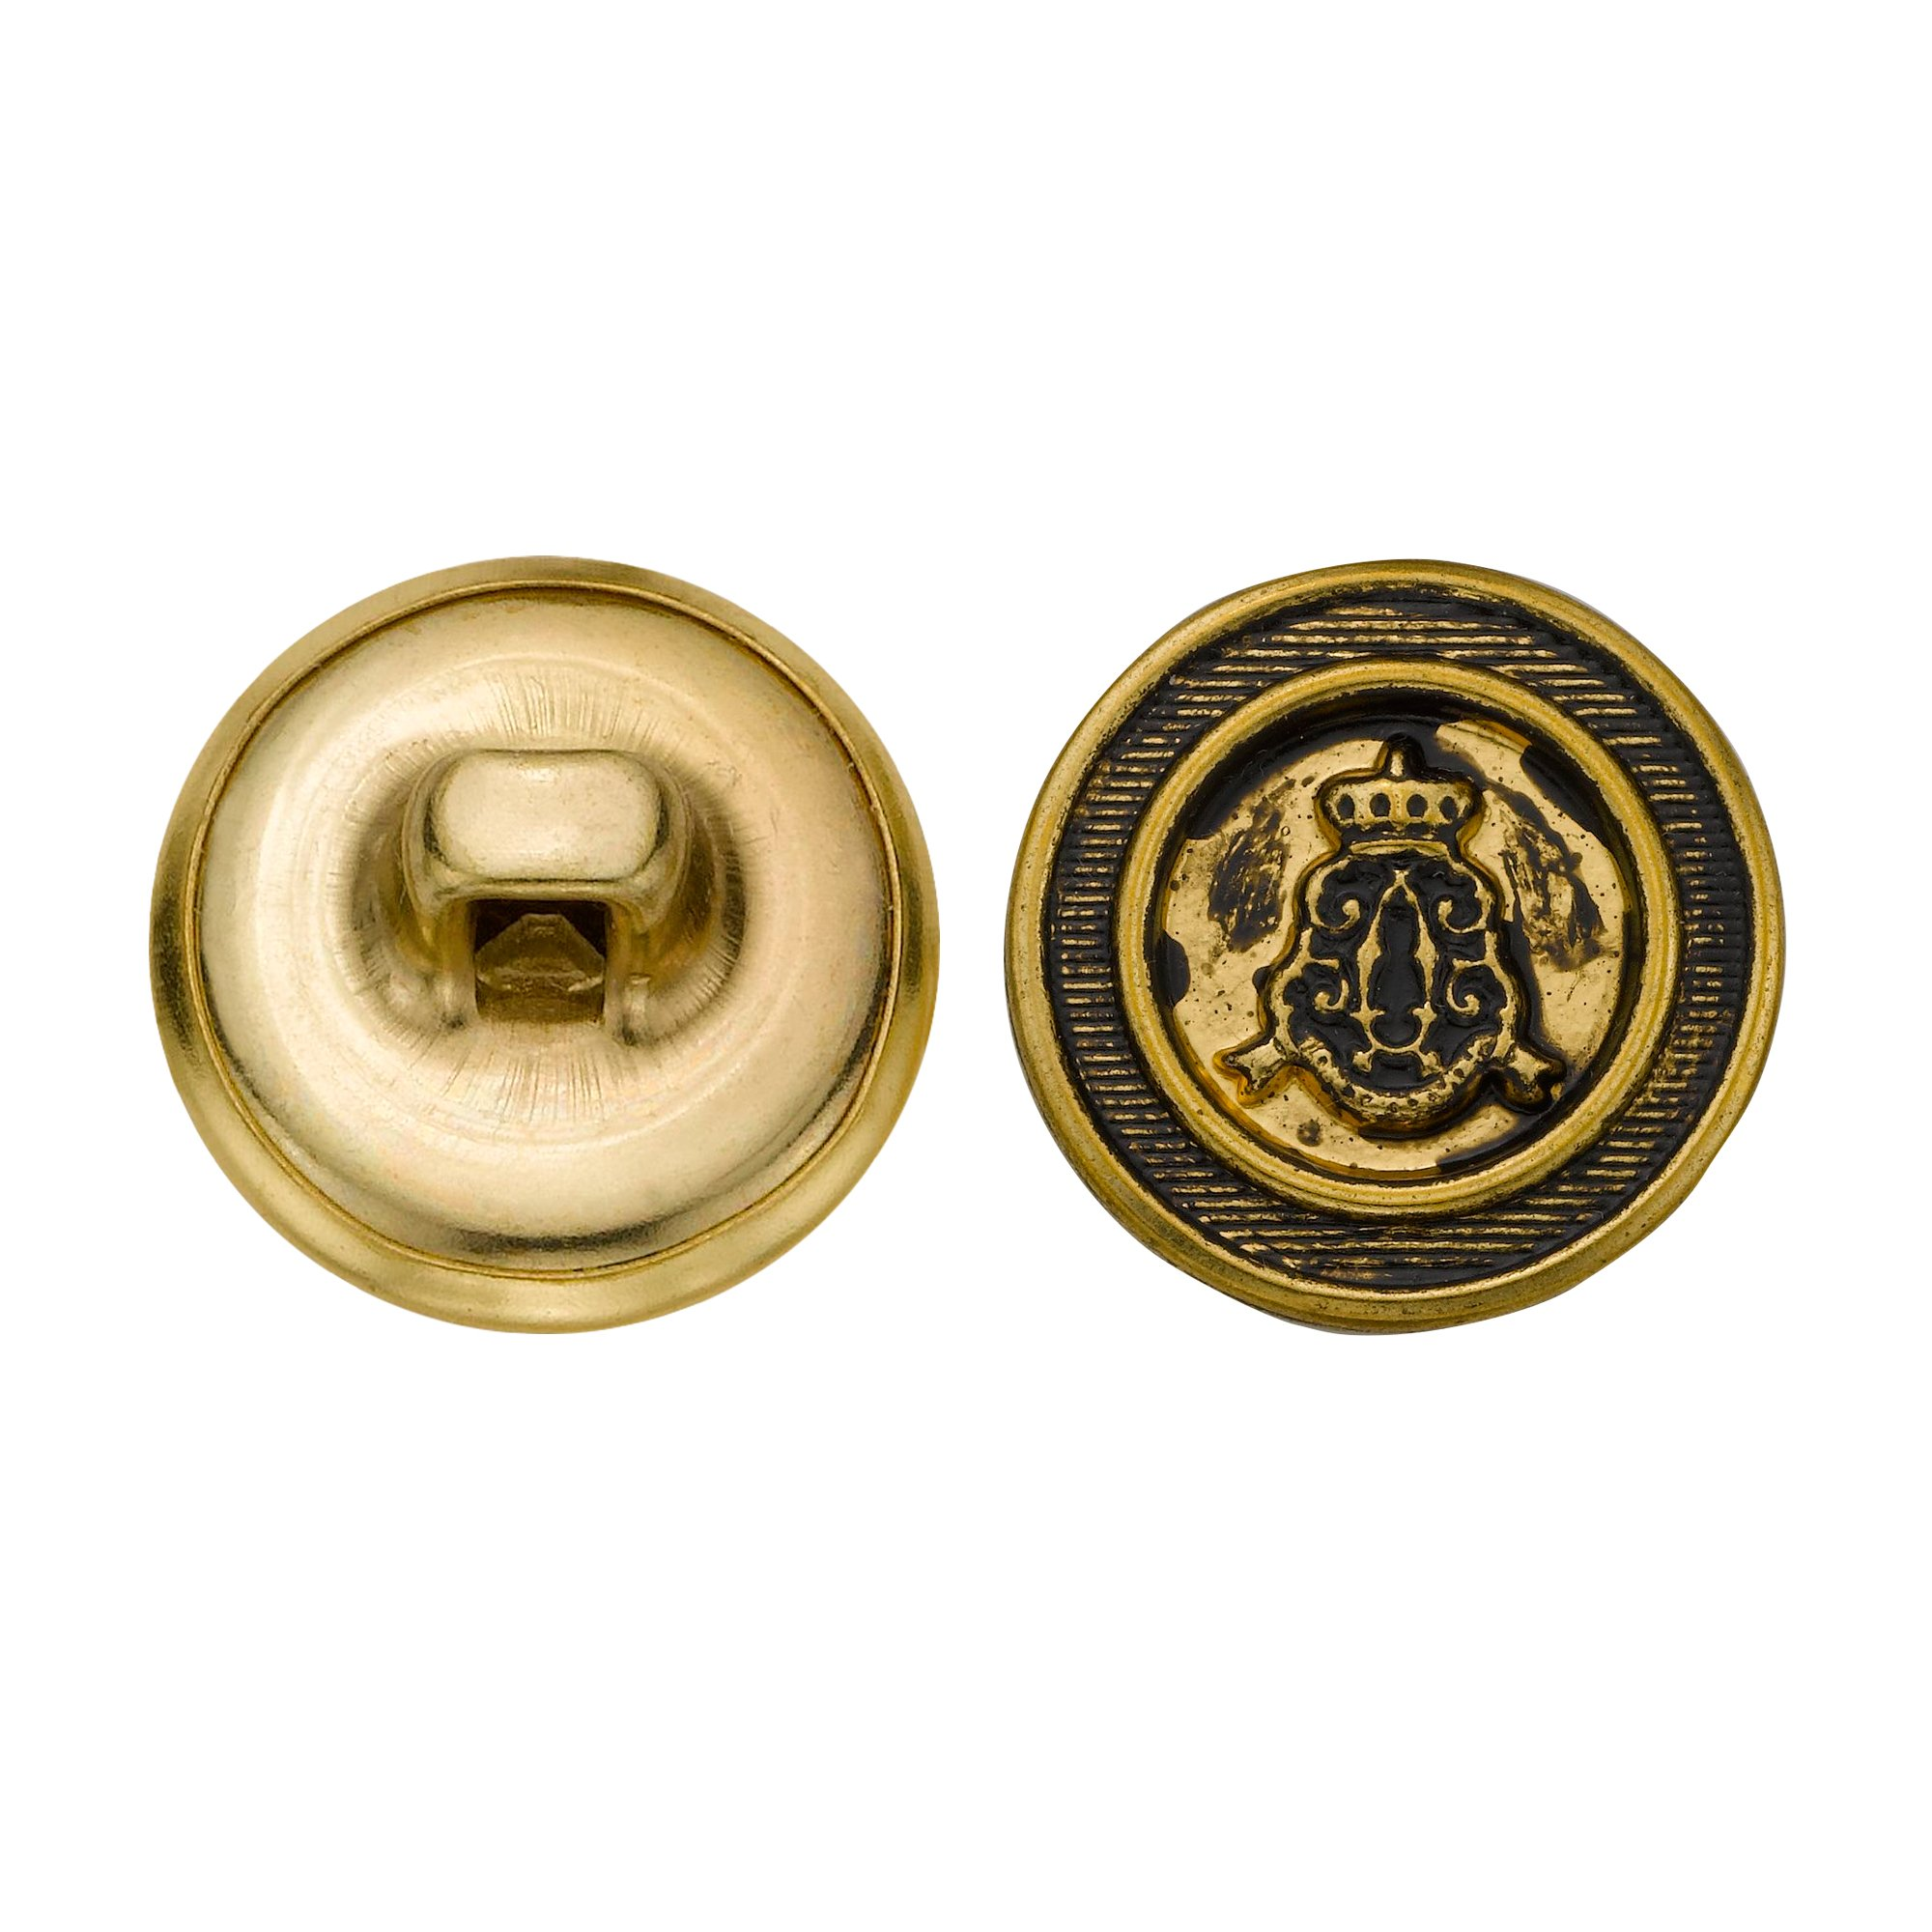 C&C Metal Products 5199 Fancy Royal Metal Button, Size 24 Ligne, Antique Gold, 72-Pack